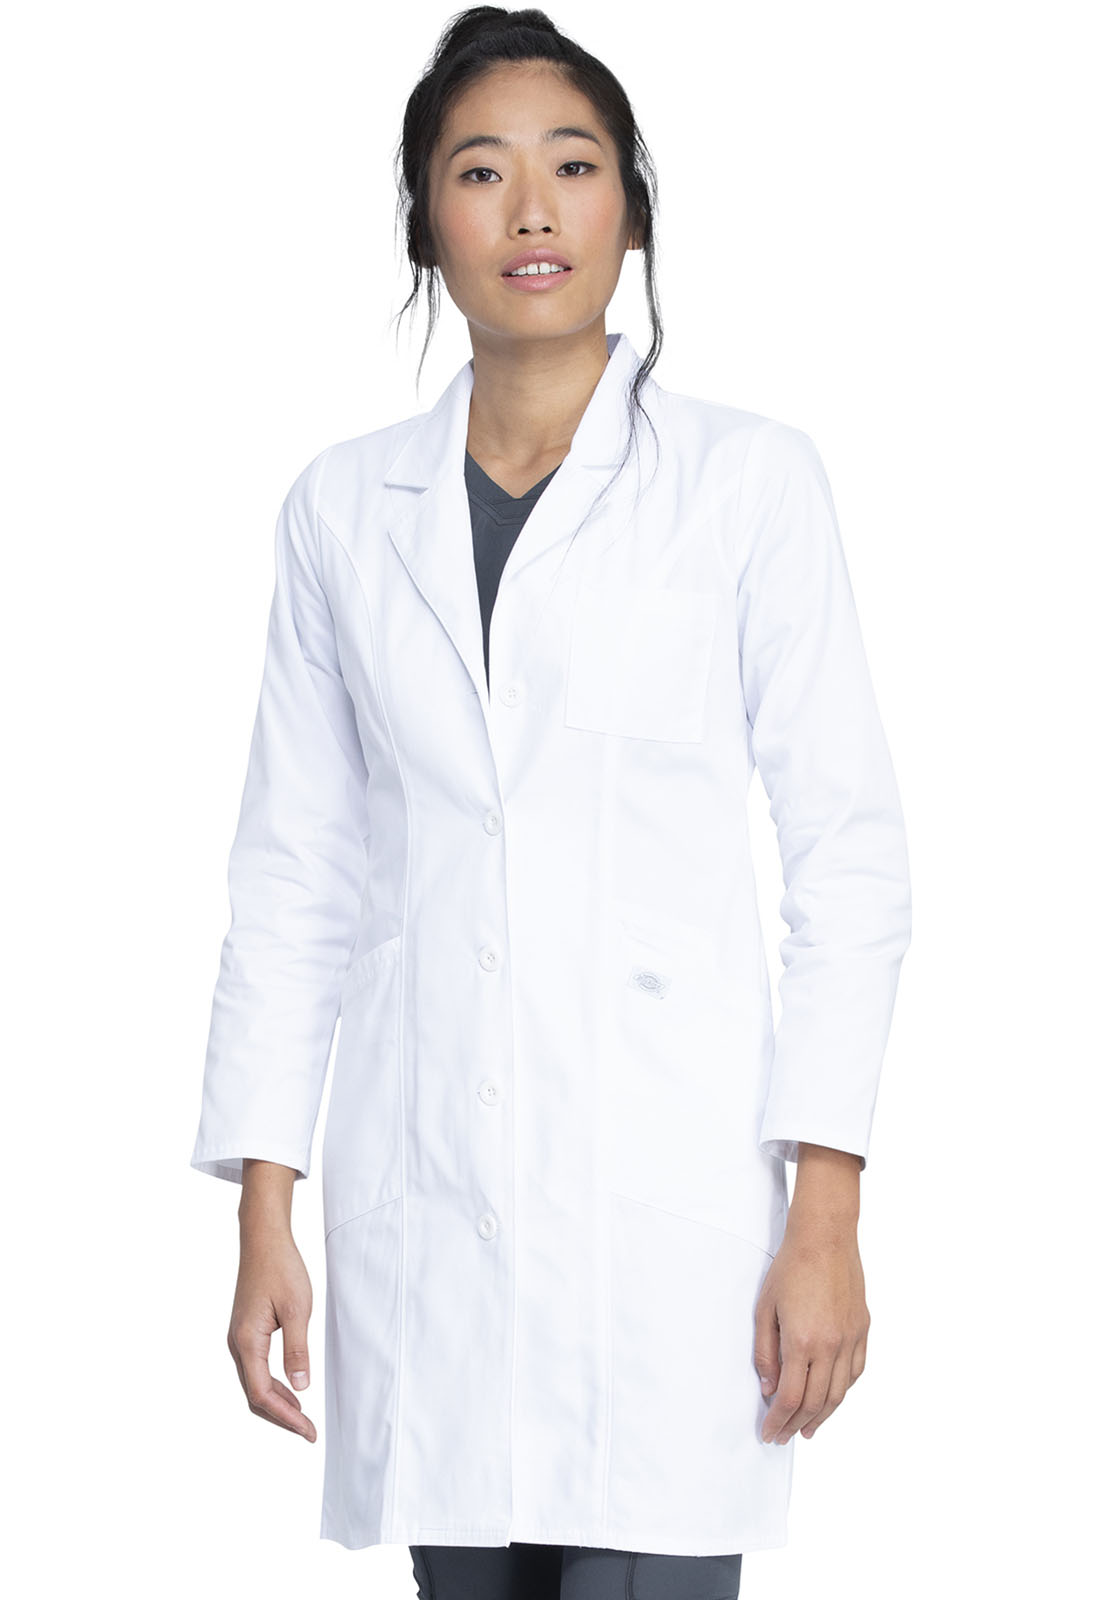 37 lab coat in white from dickies medical